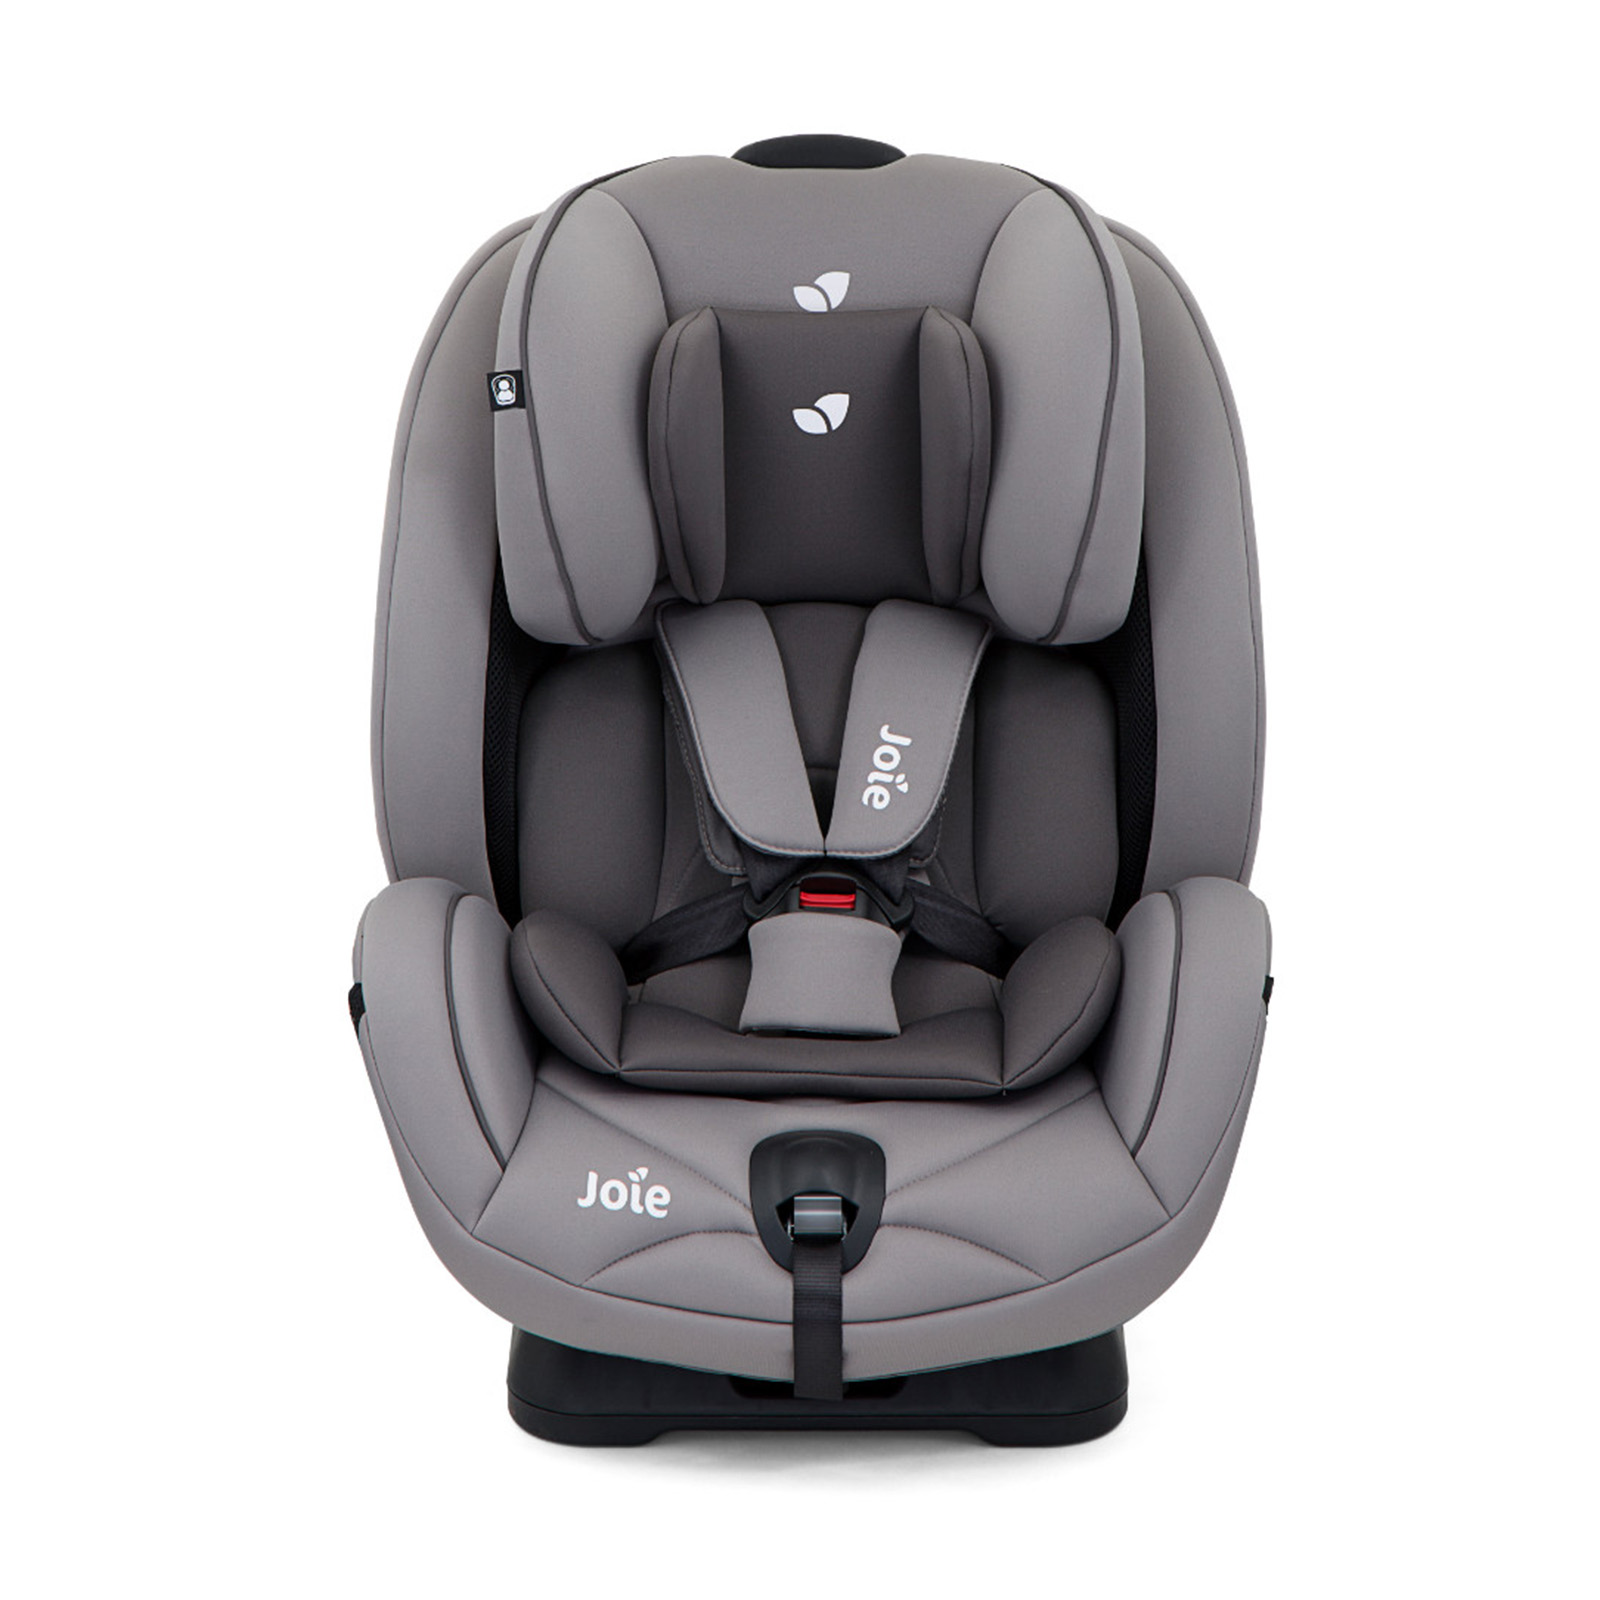 Joie Baby Car Seat Usa Joie Stages Group 1 2 Car Seat Grey Flannel